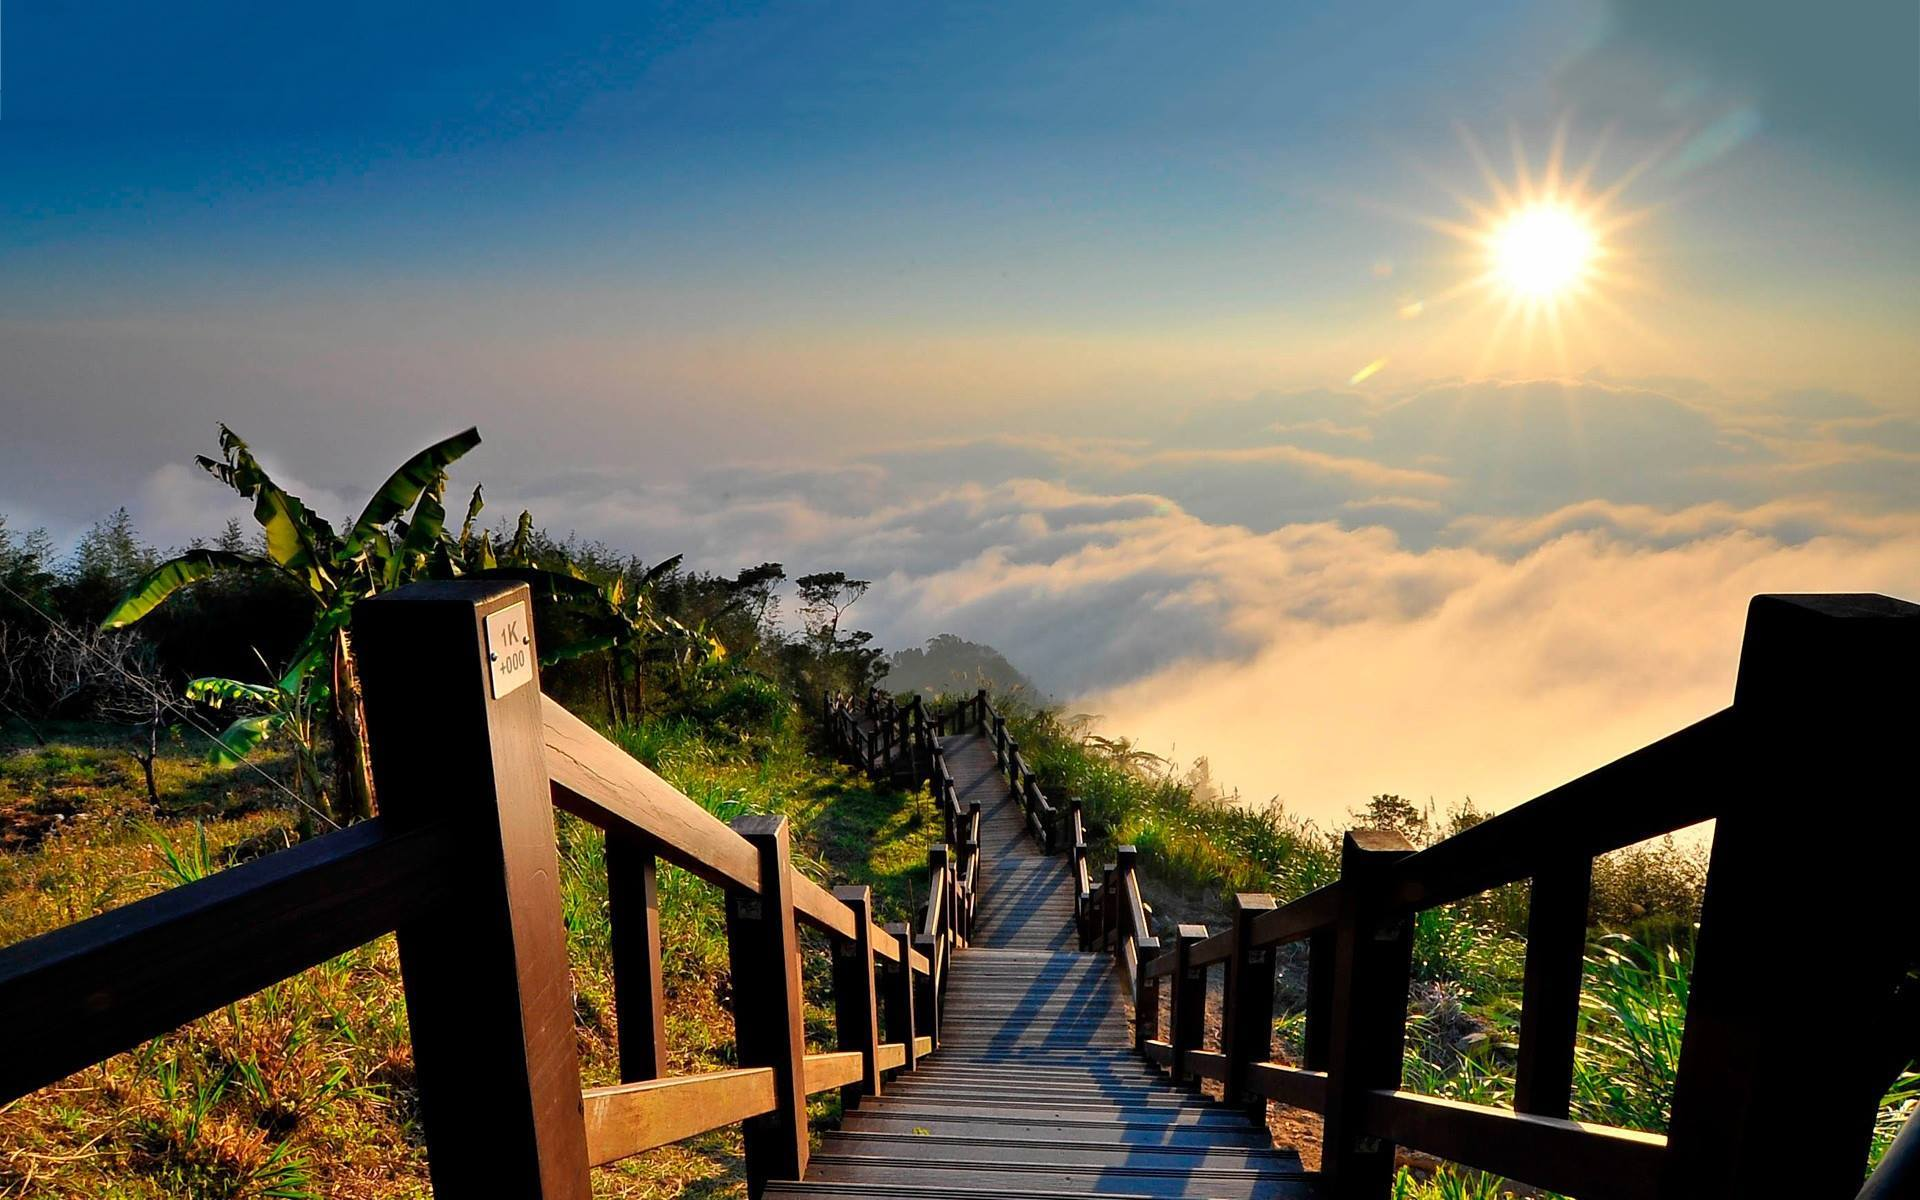 Stairs to Heaven, Yushan National Park, Taiwan // Source » awesomeplacestovisit.com